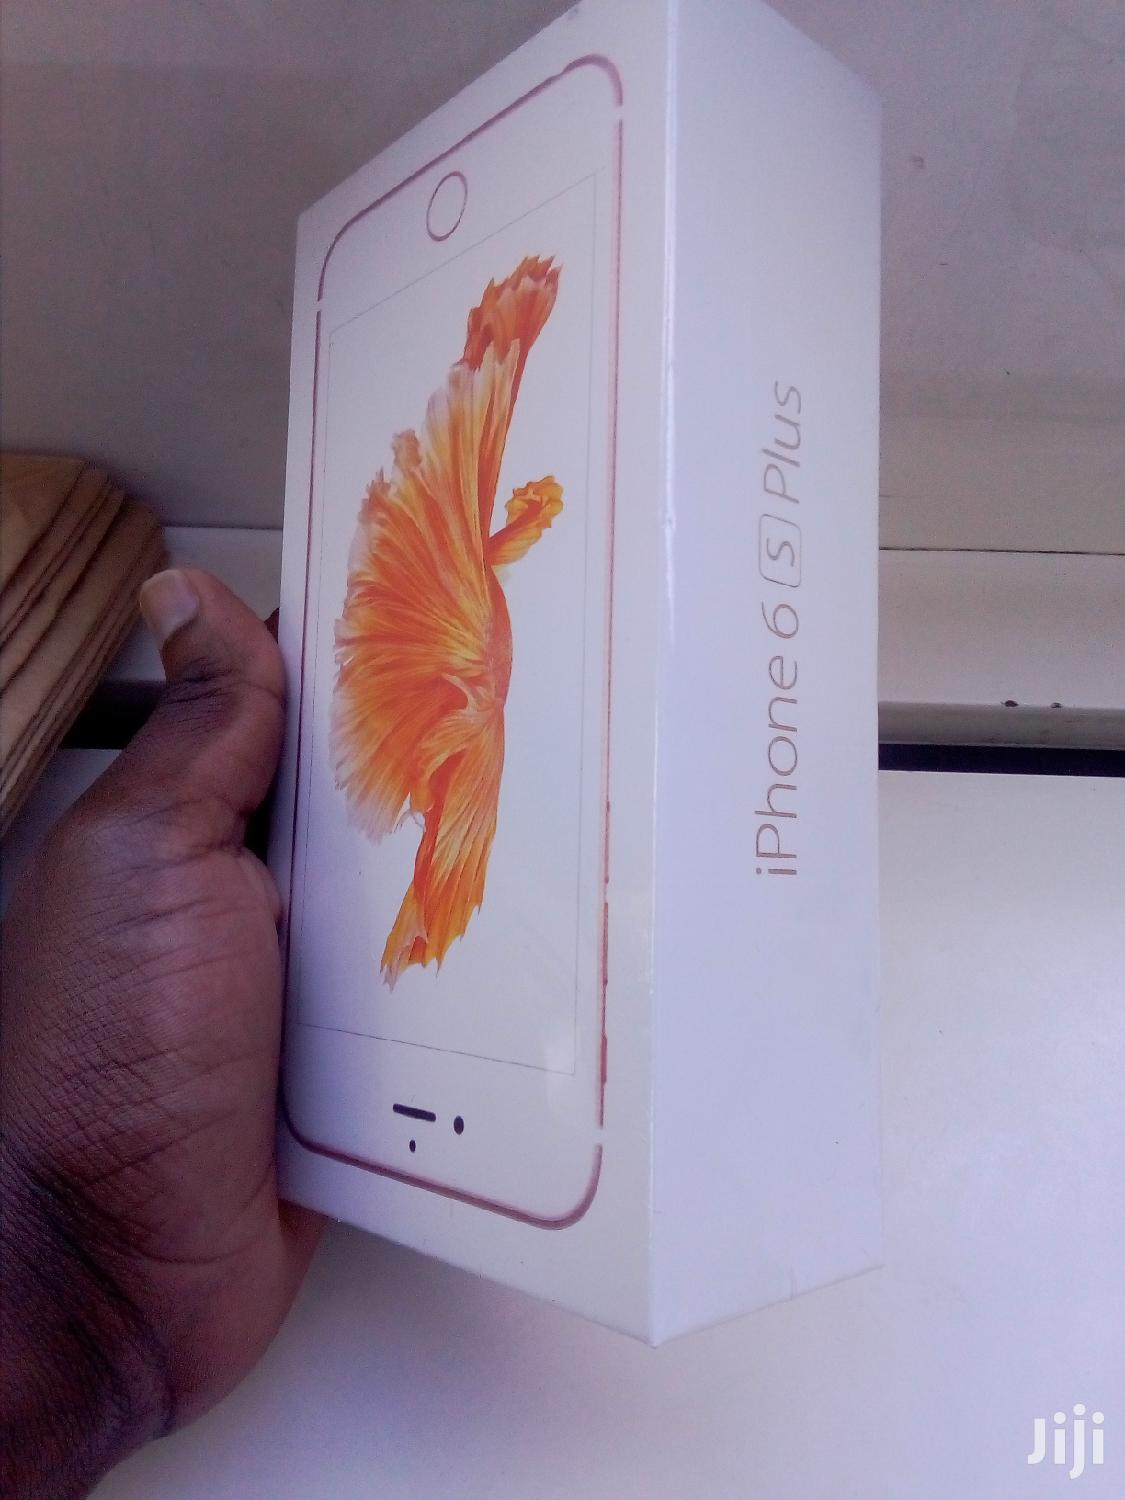 New Apple iPhone 6 Plus 128 GB